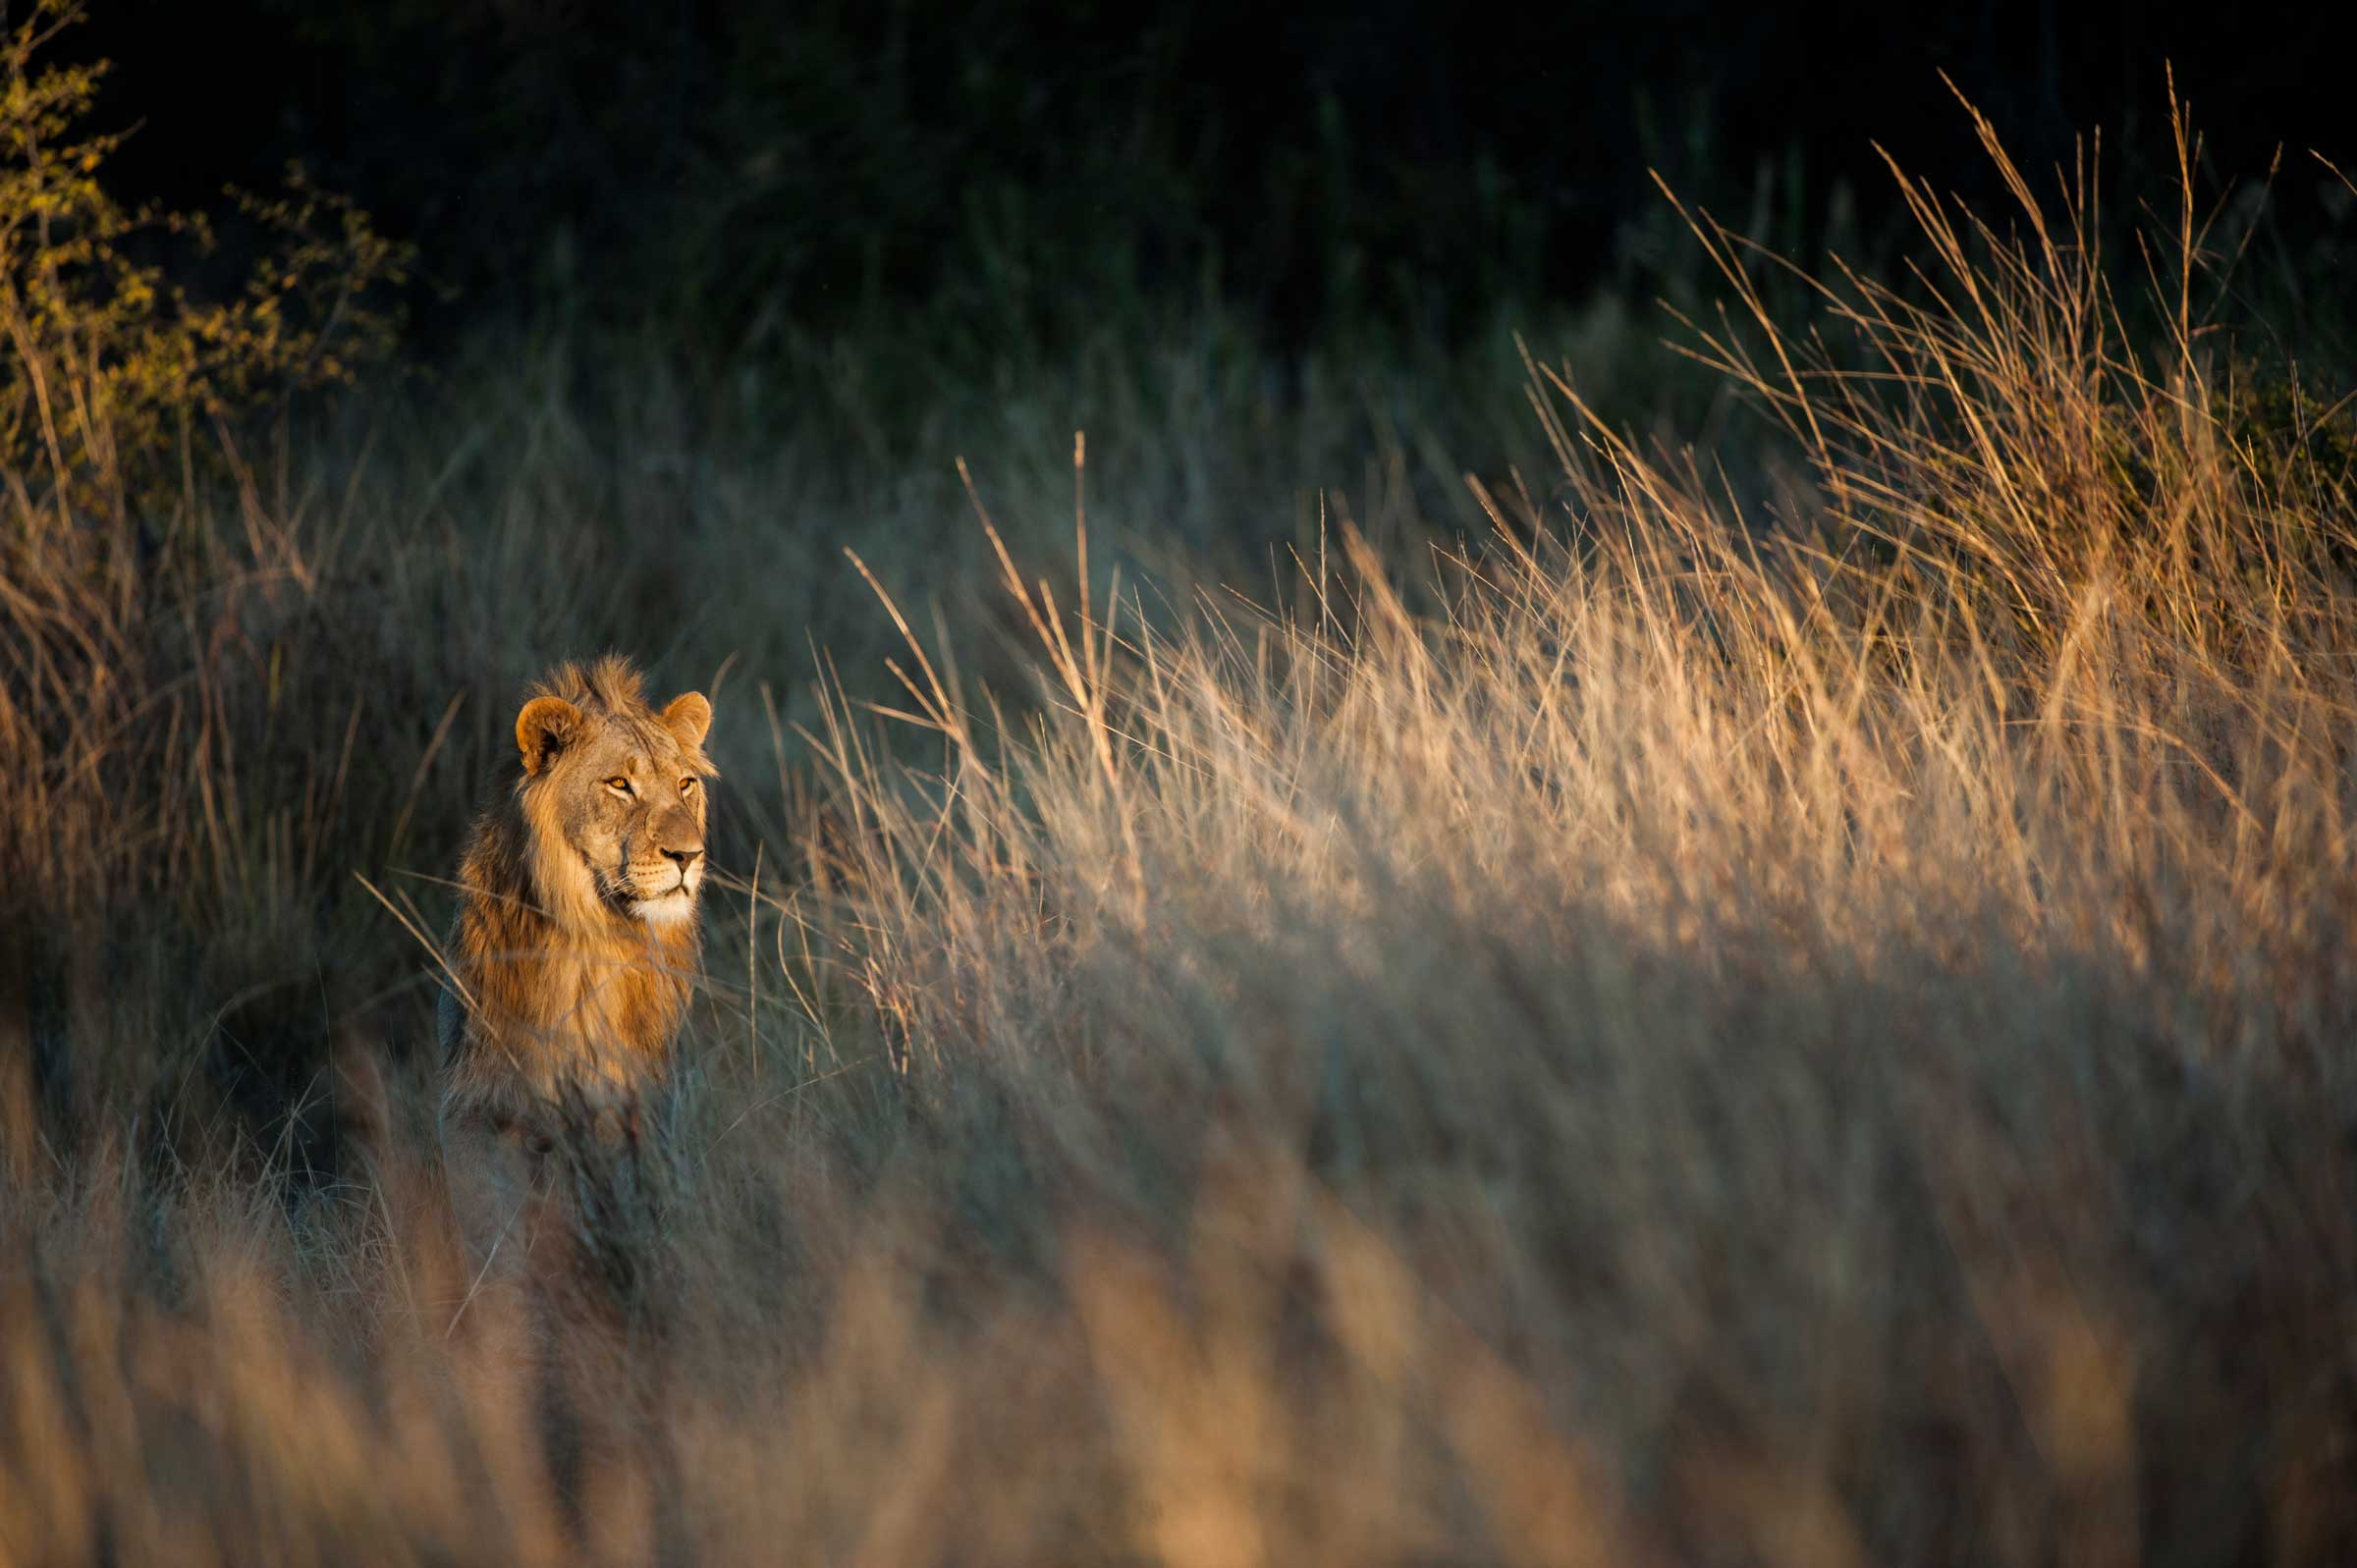 A lion gazes into the light while standing in patient wait in tall grass. Photo by conservation photographer Pete Oxford.